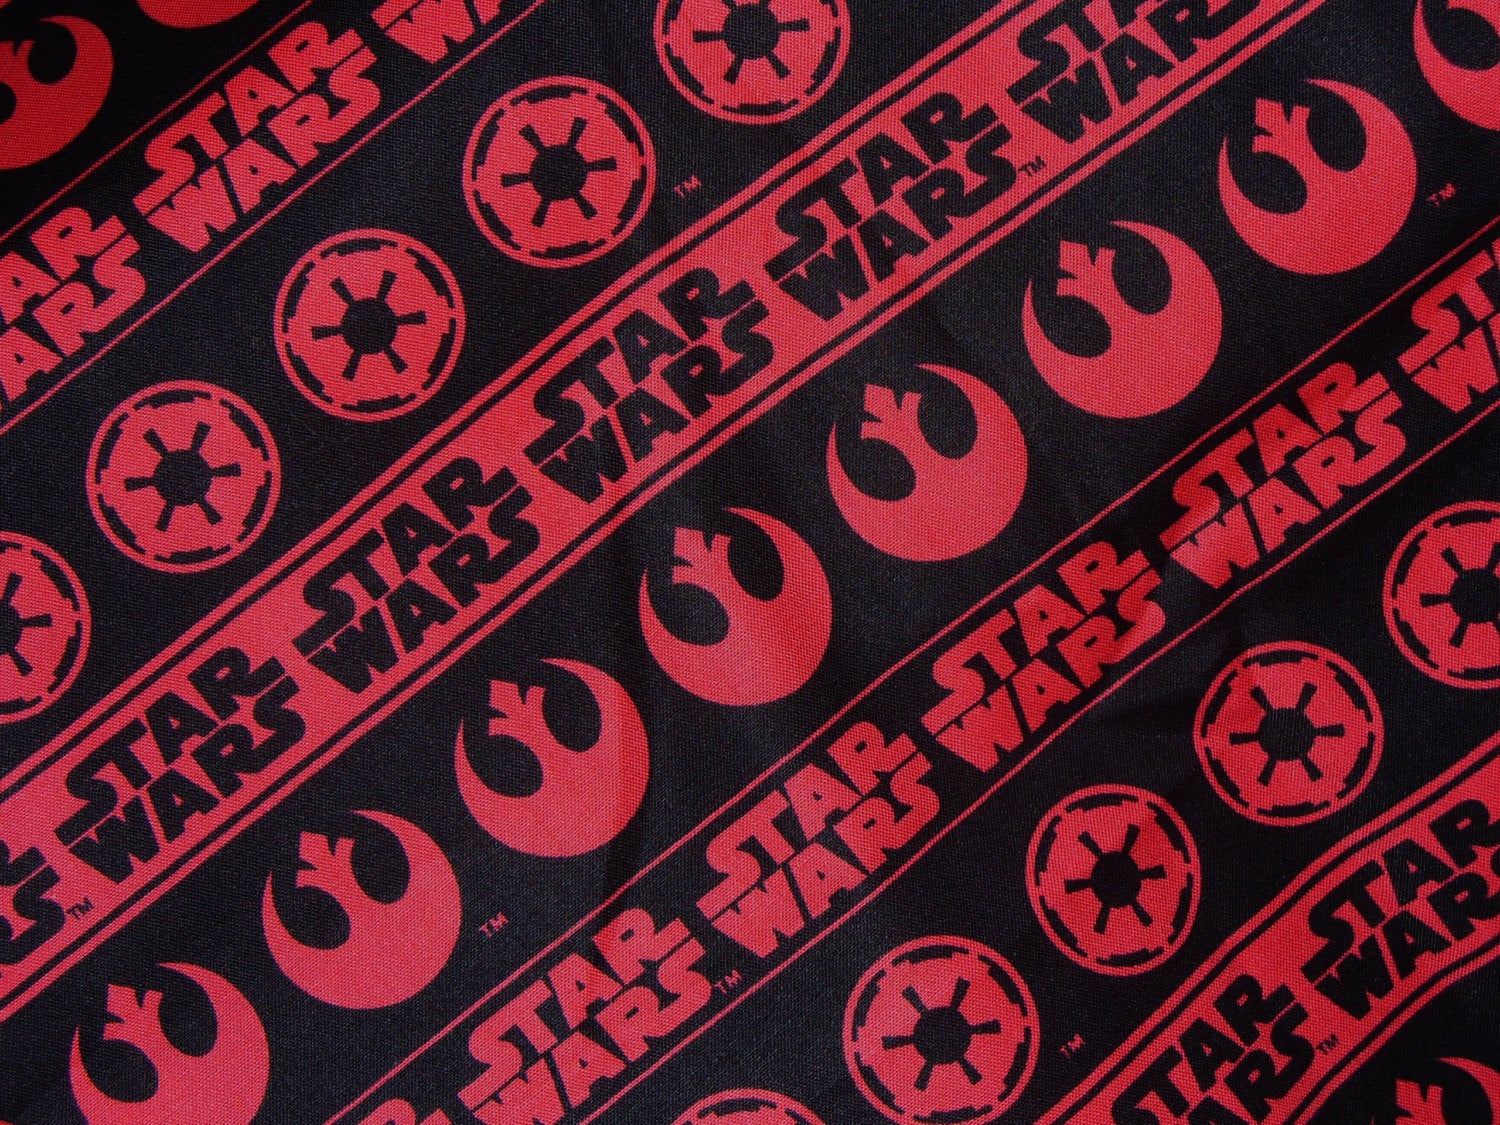 Star wars fabric star wars logos emblems red and black for Star wars fabric